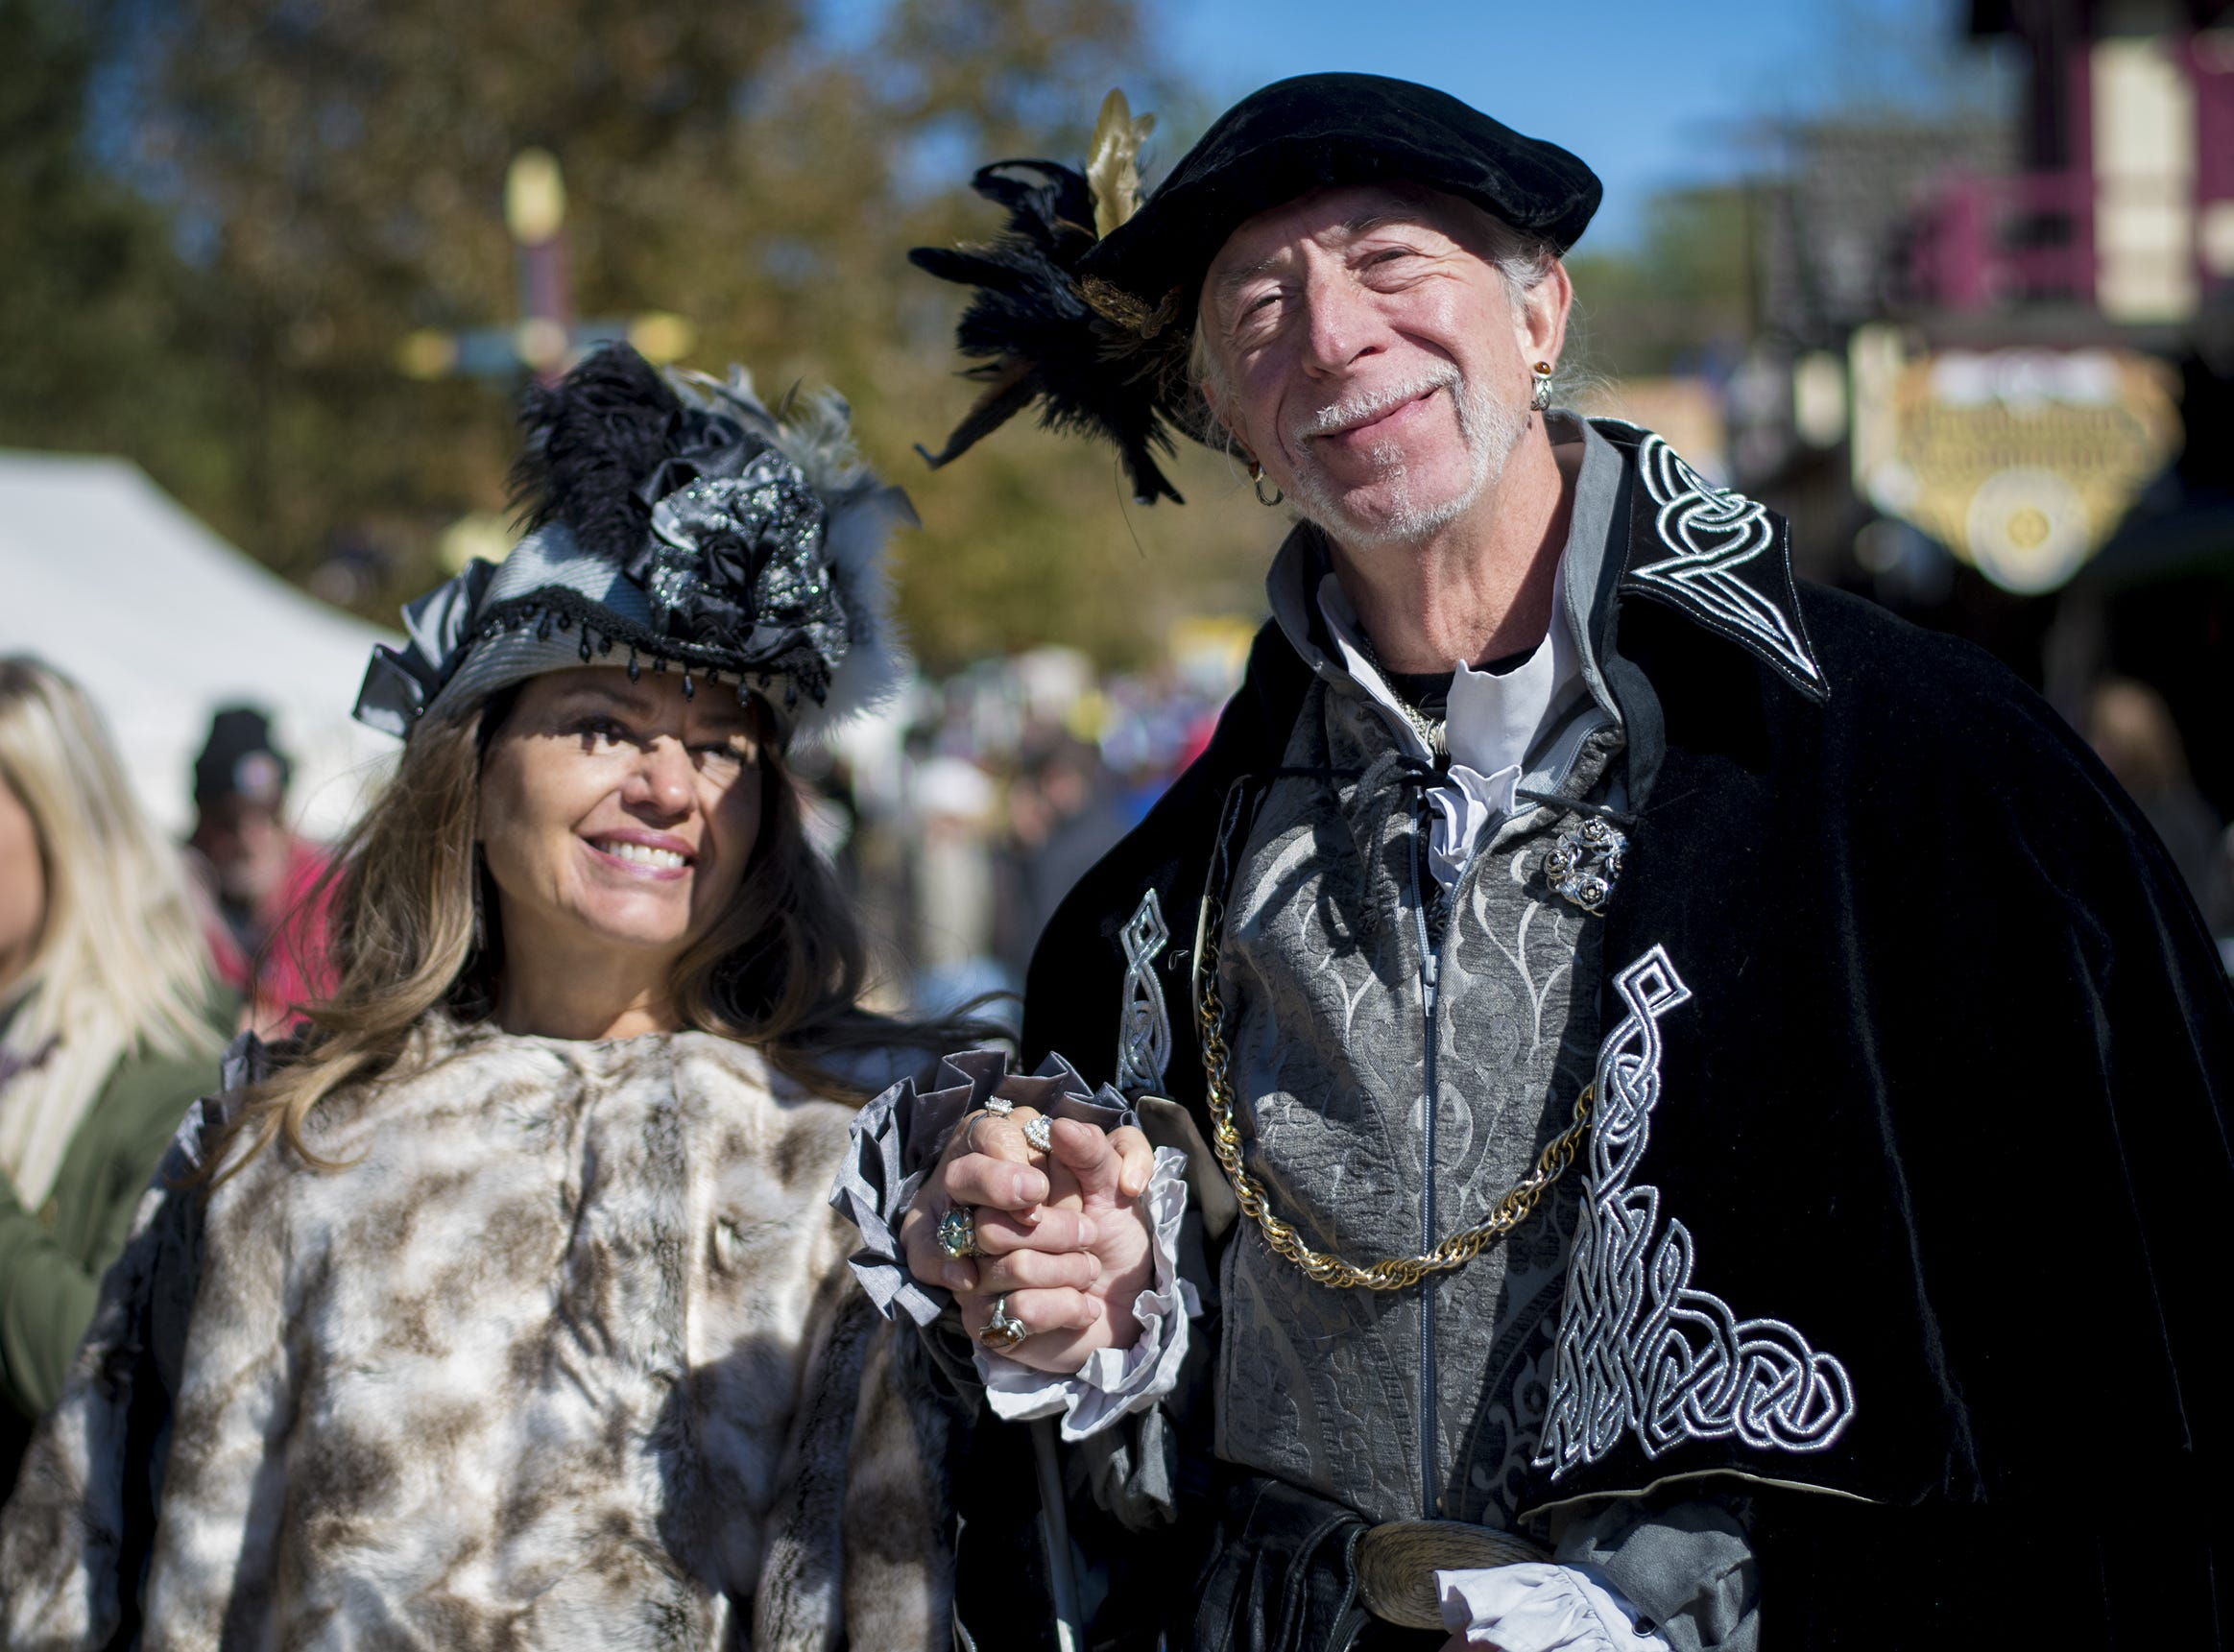 Michael and Jill White of Michigan attend Romance Weekend at the Ohio Renaissance Festival Sunday, October 21, 2018 in Waynesville, Ohio.